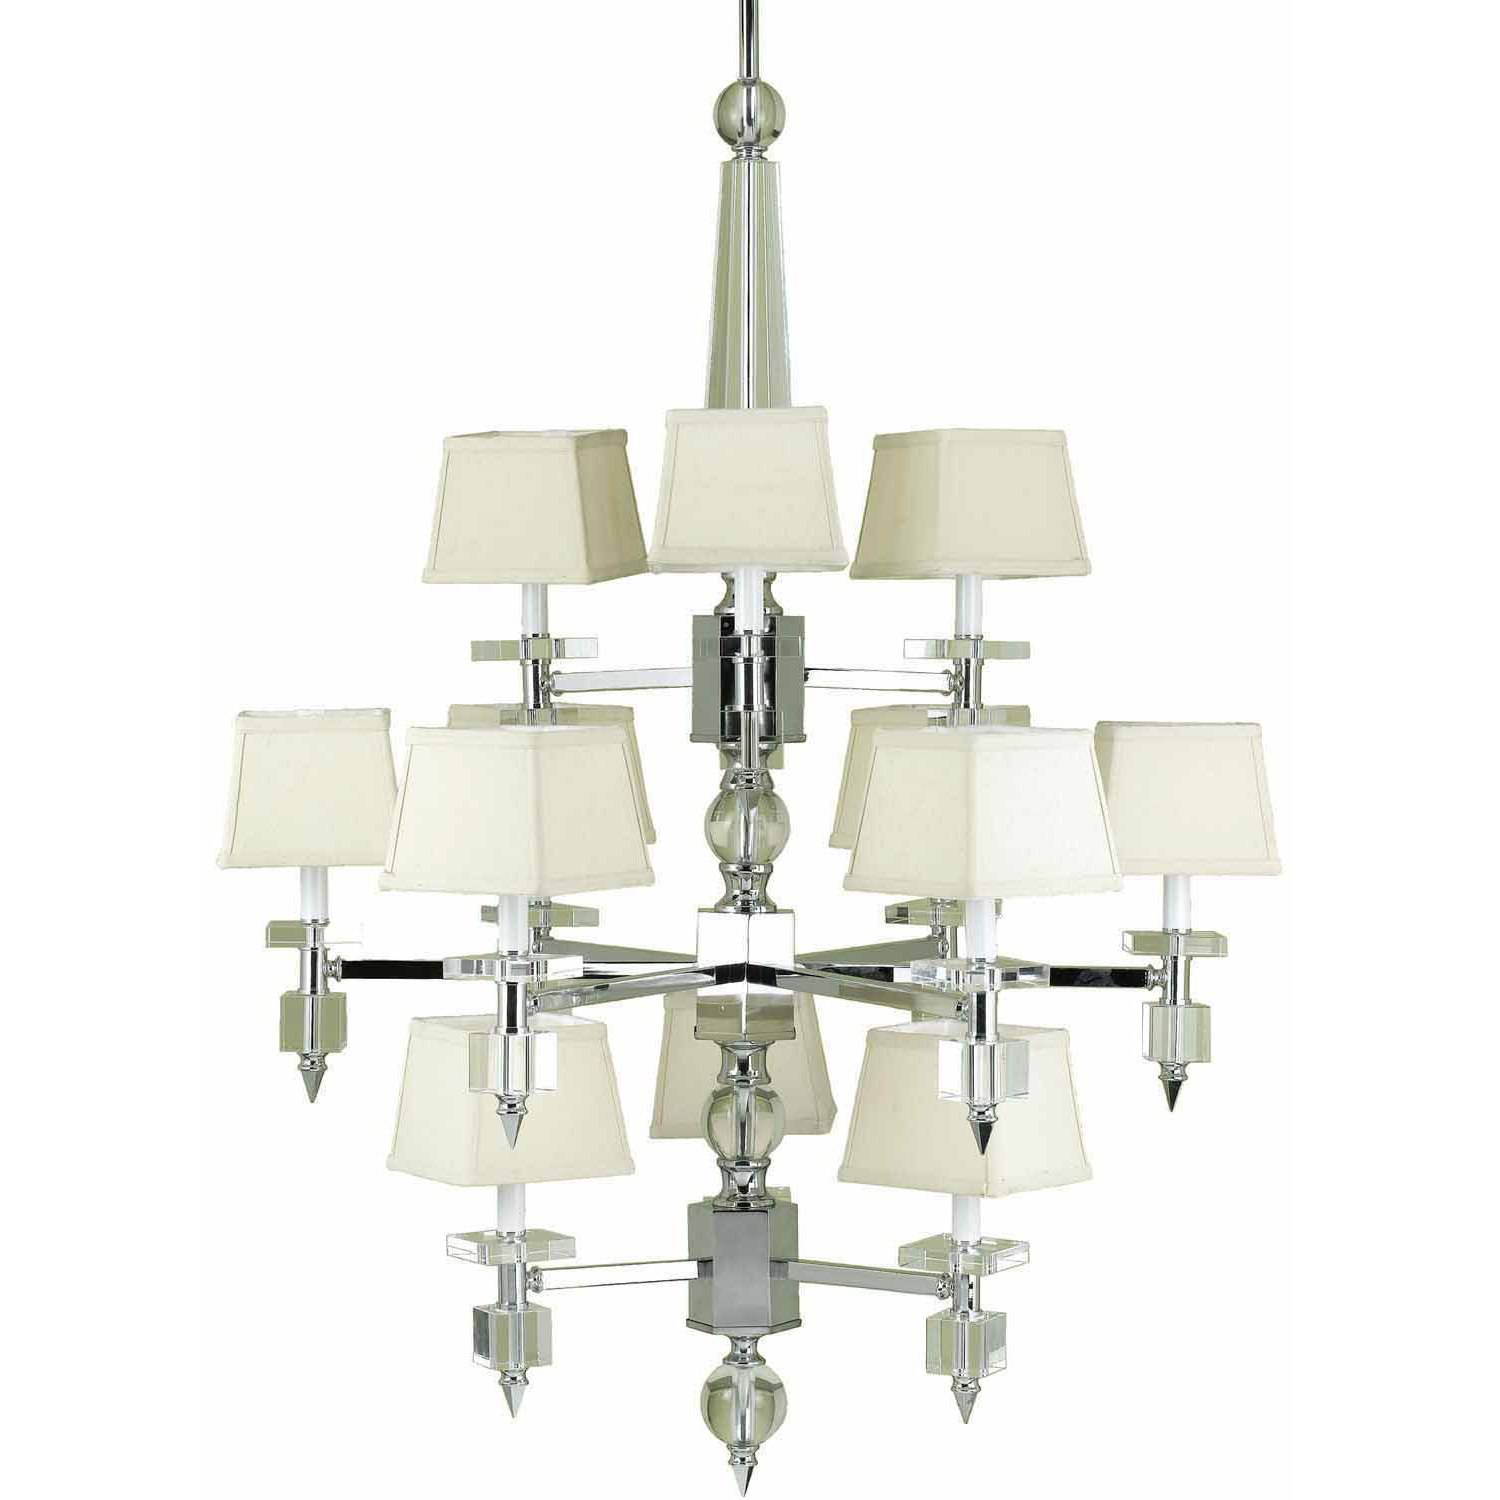 Af Lighting Cluny 12 Light Chandelier With Cream Shades Crystal Chrome